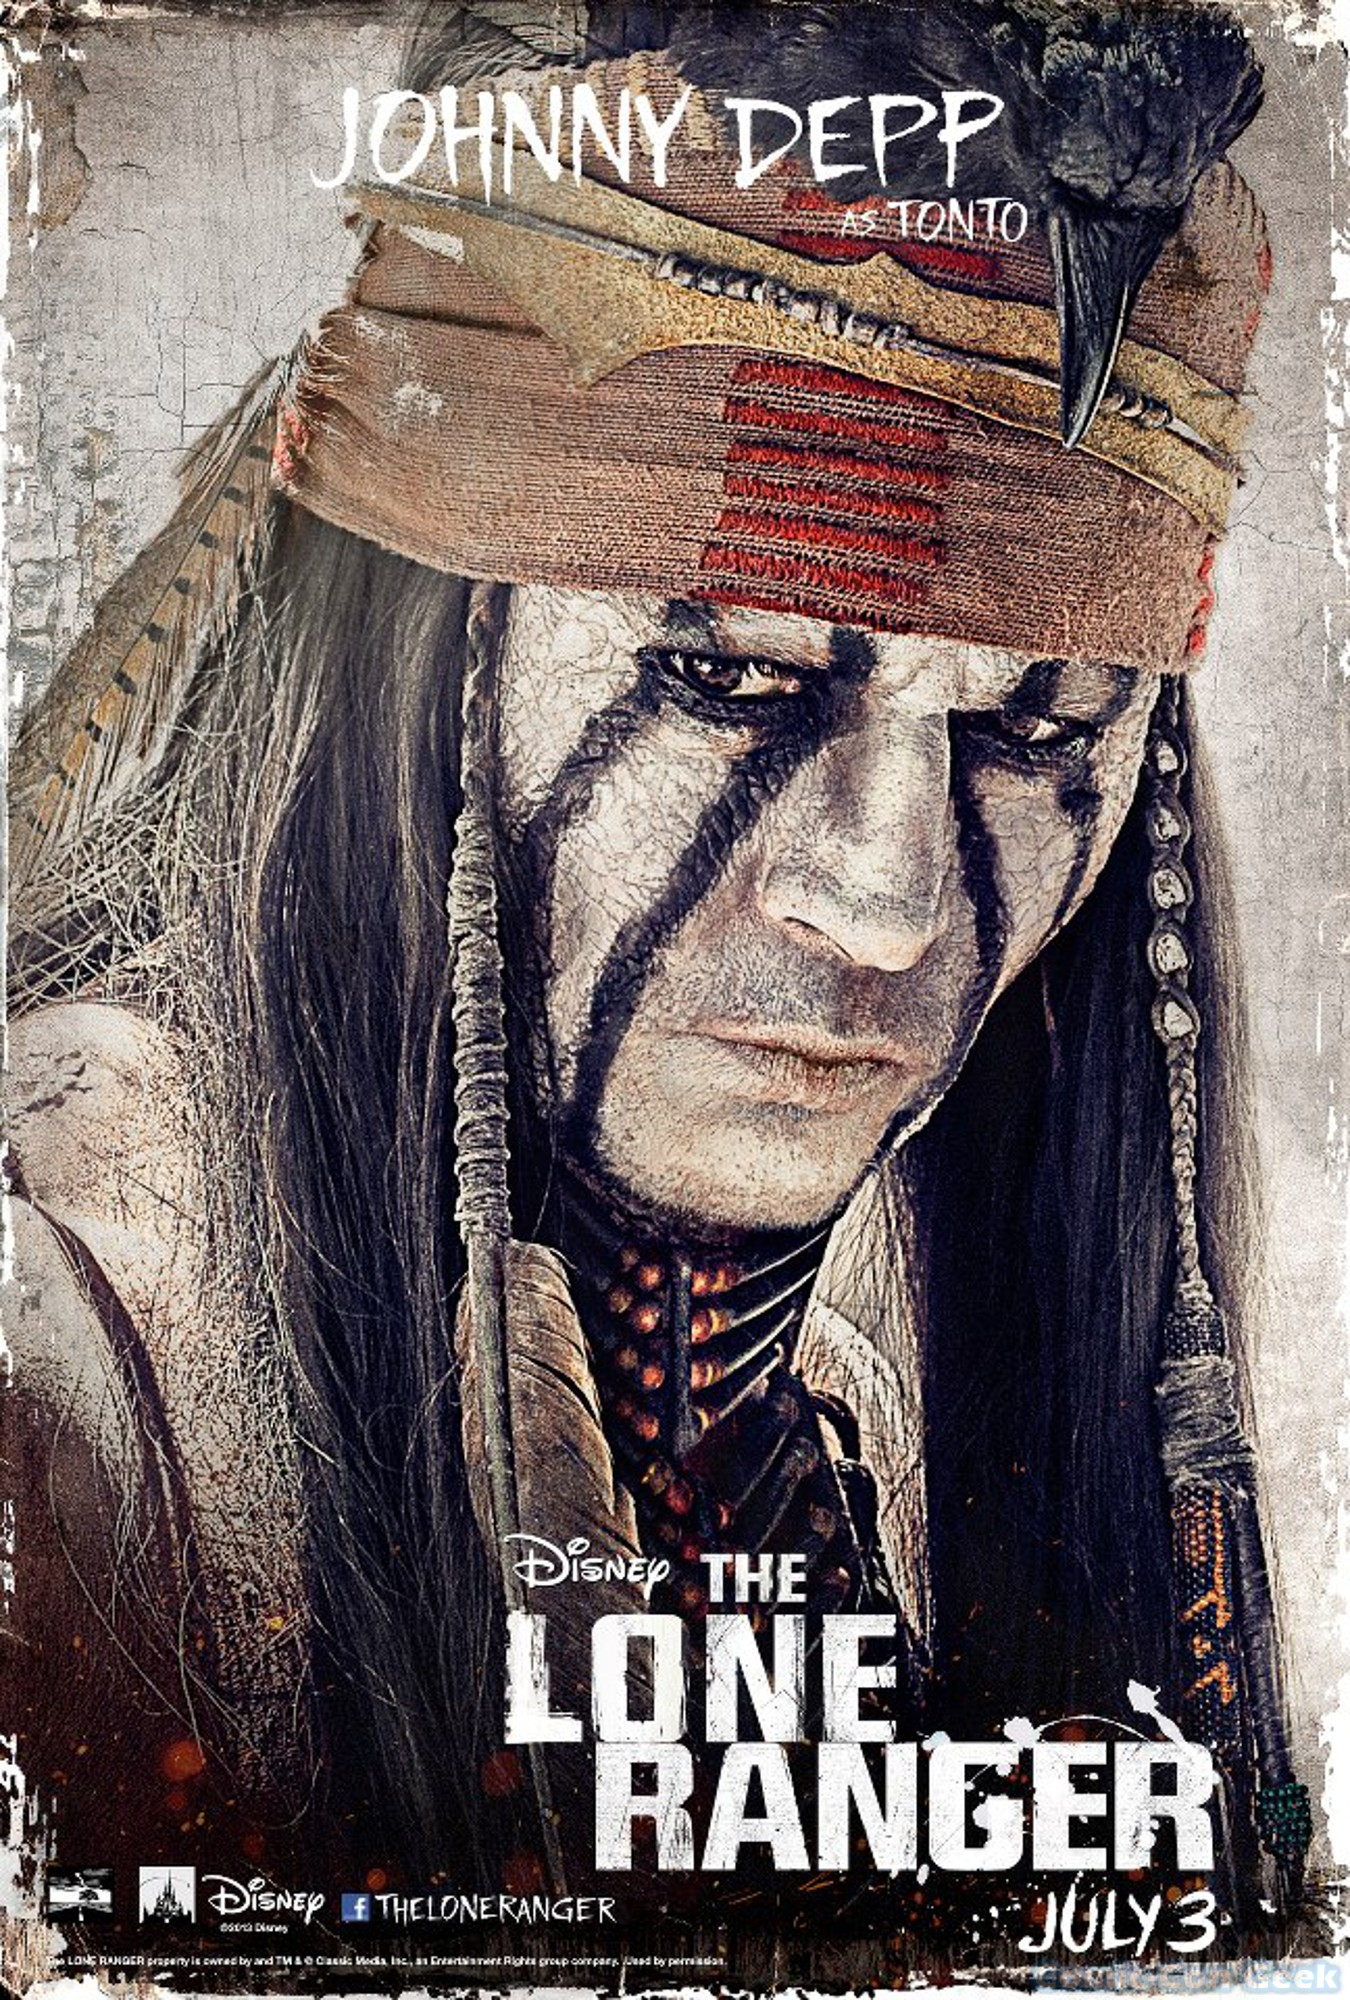 johnny-depp-as-tonto-the-lone-ranger-disney-character-poster